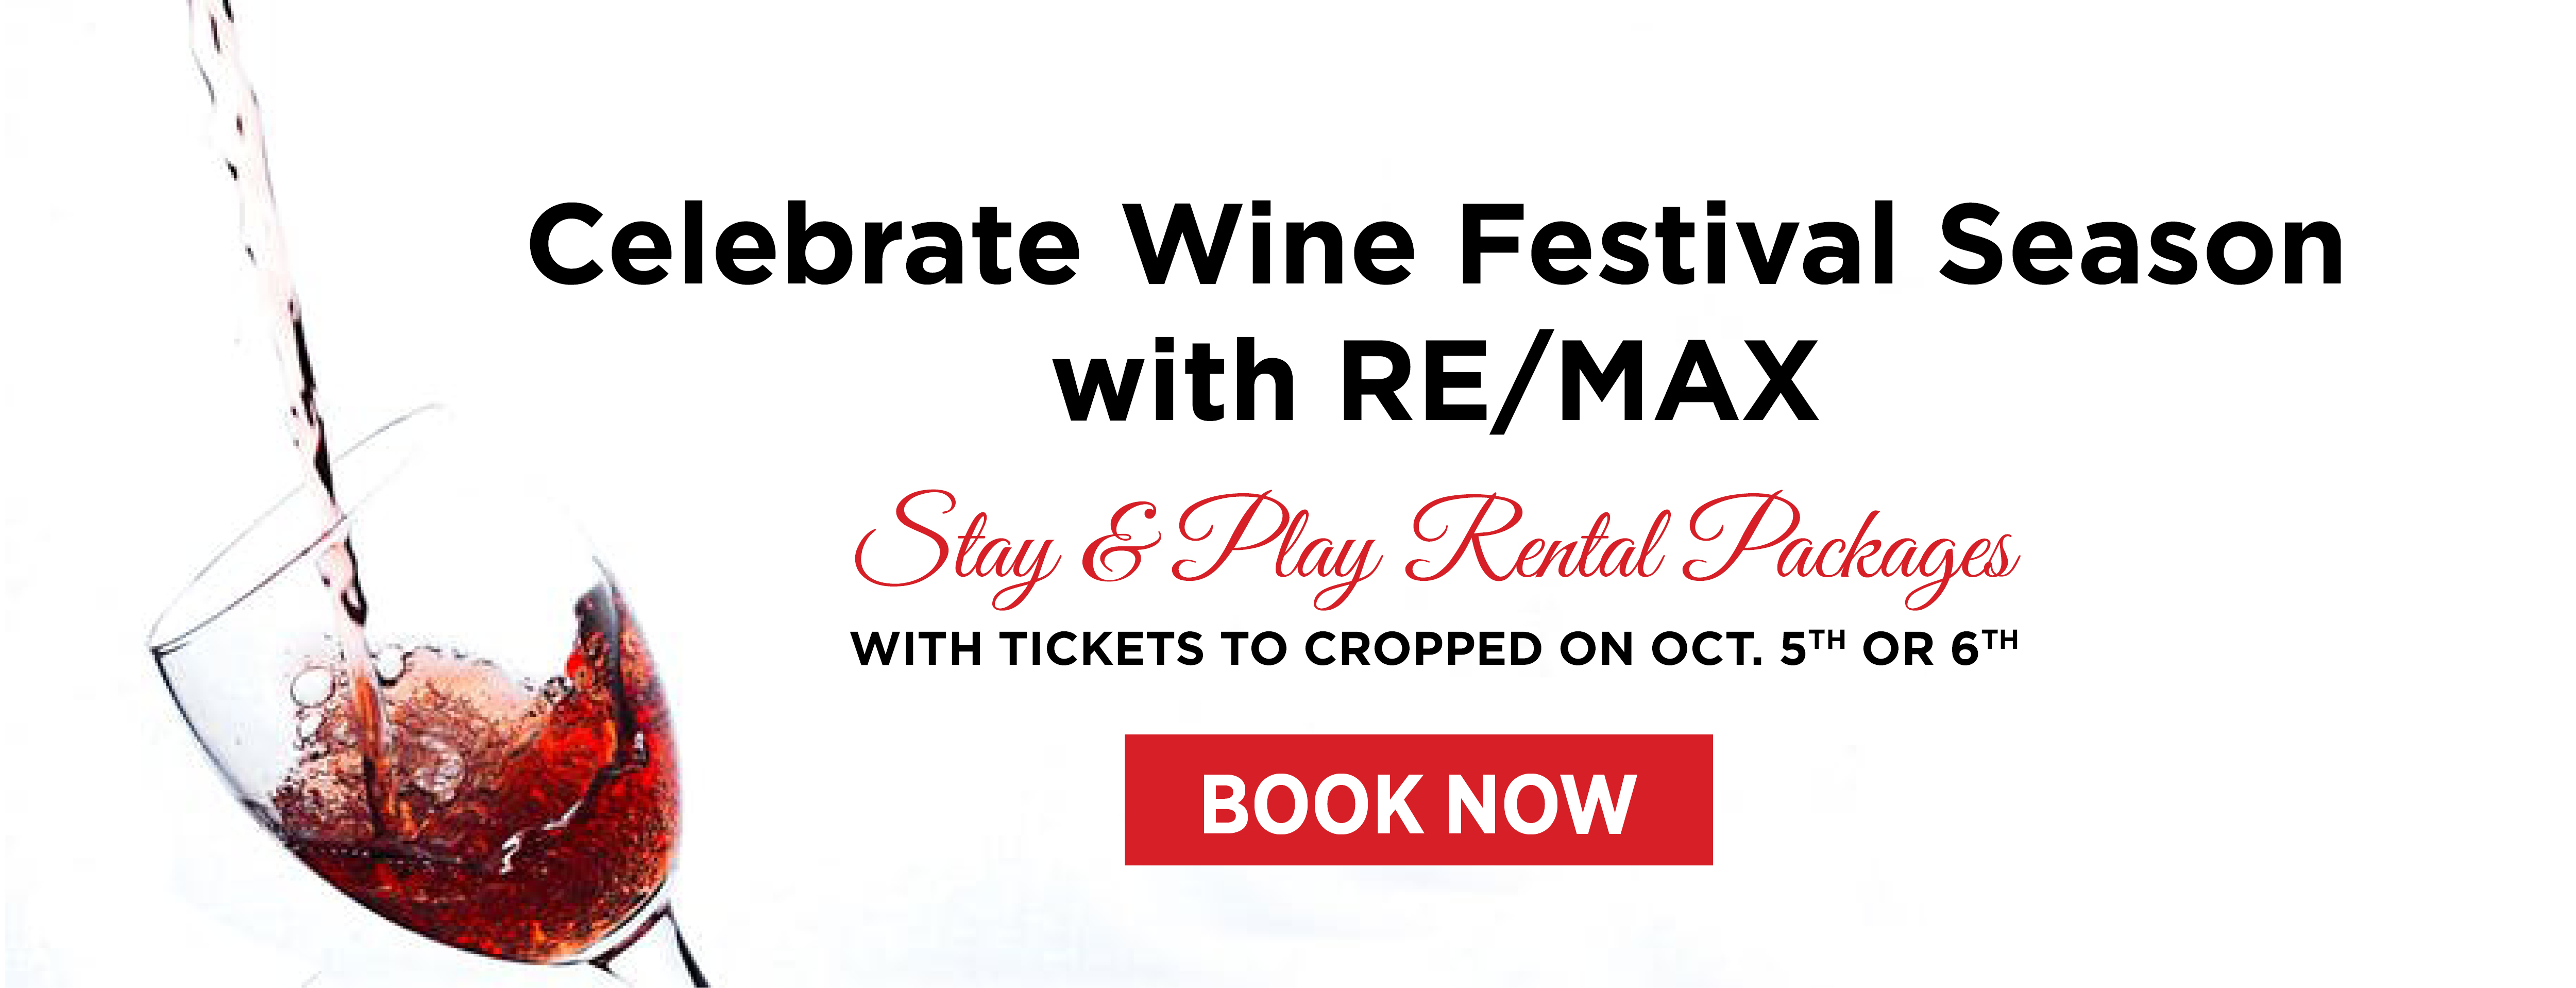 WEBIMAGES: REMAX Vacation Rentals_WineFest.jpg